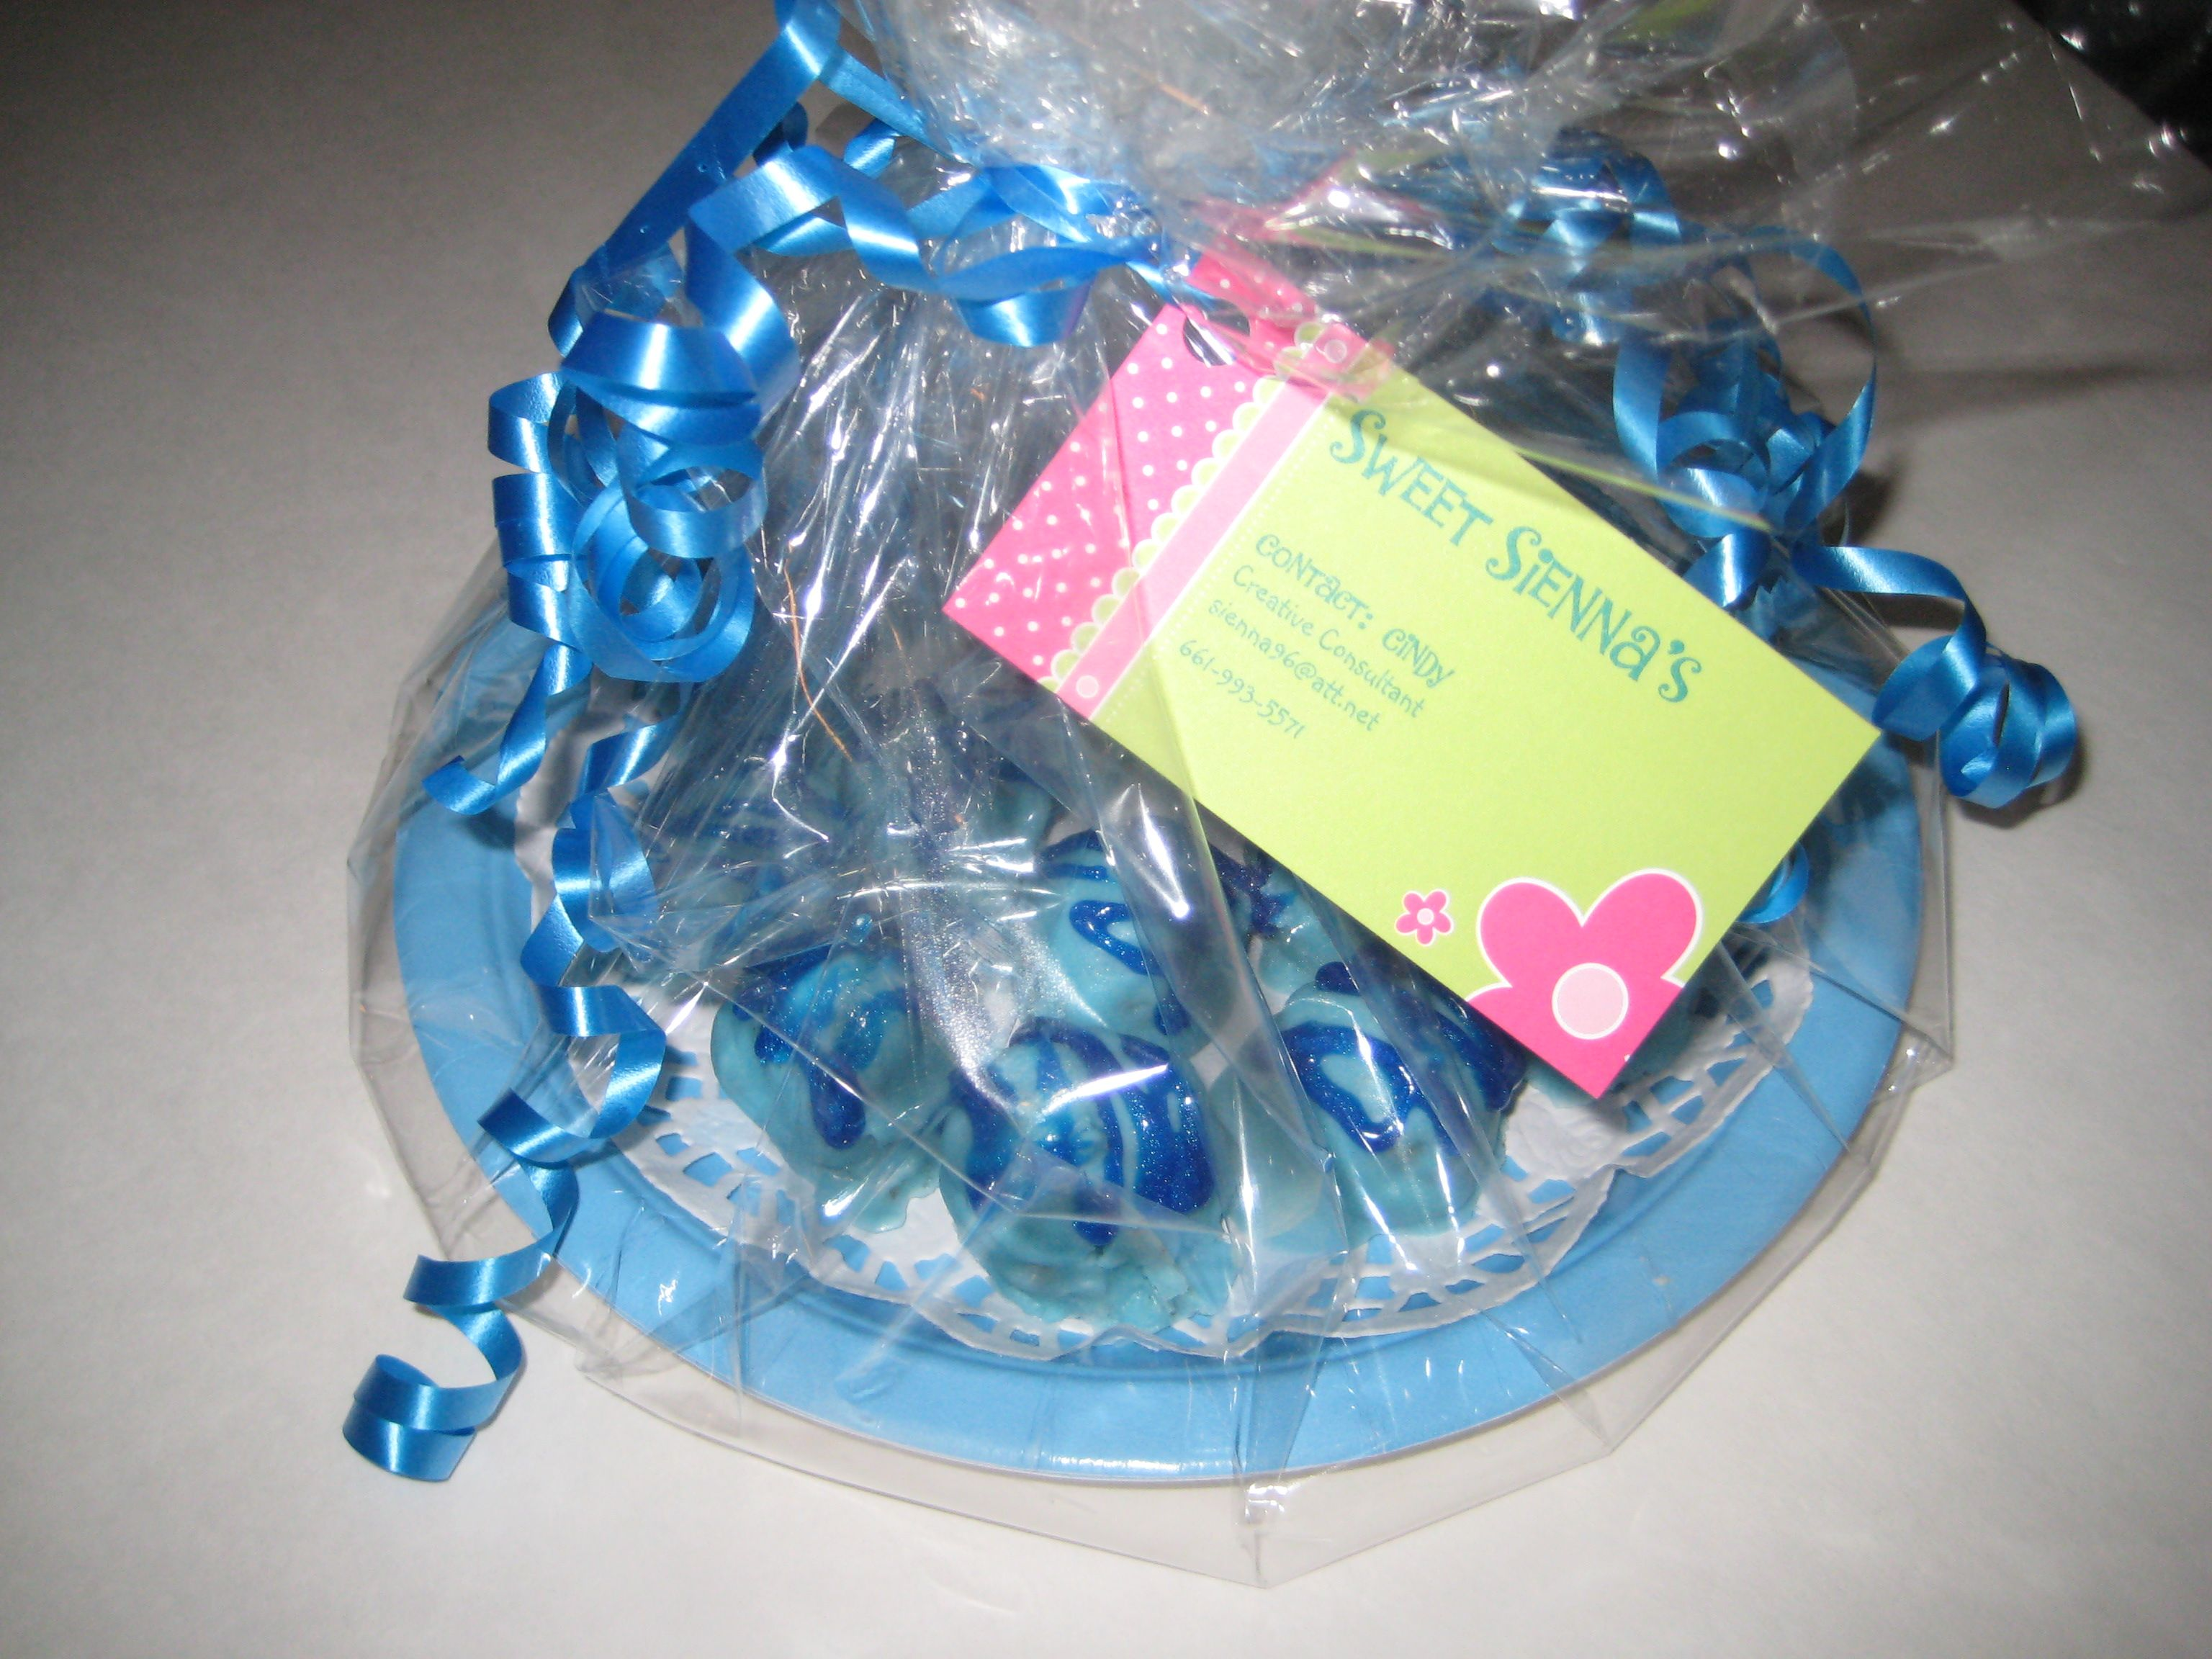 Marvelous Minty Morsels for a friend and her baby.